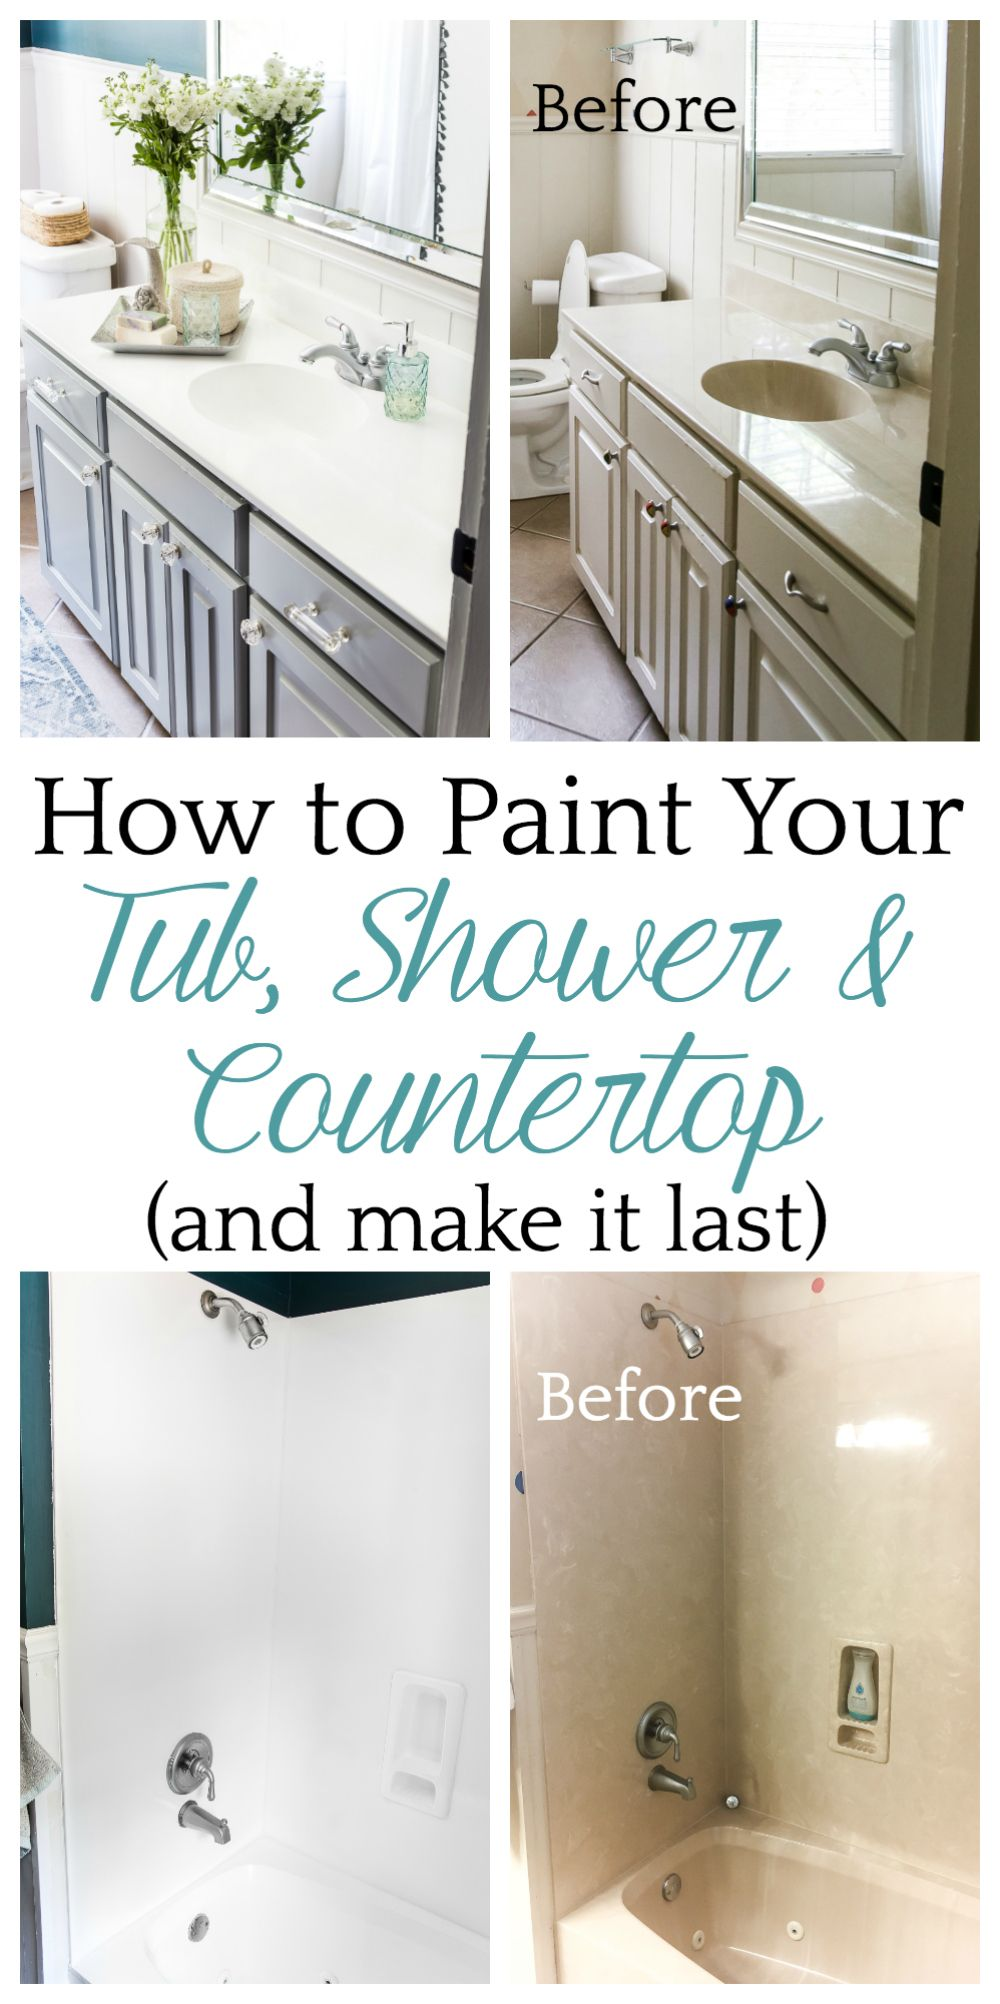 Our Painted Sink Countertop Tub & Shower 8 Months Later | Pinterest ...